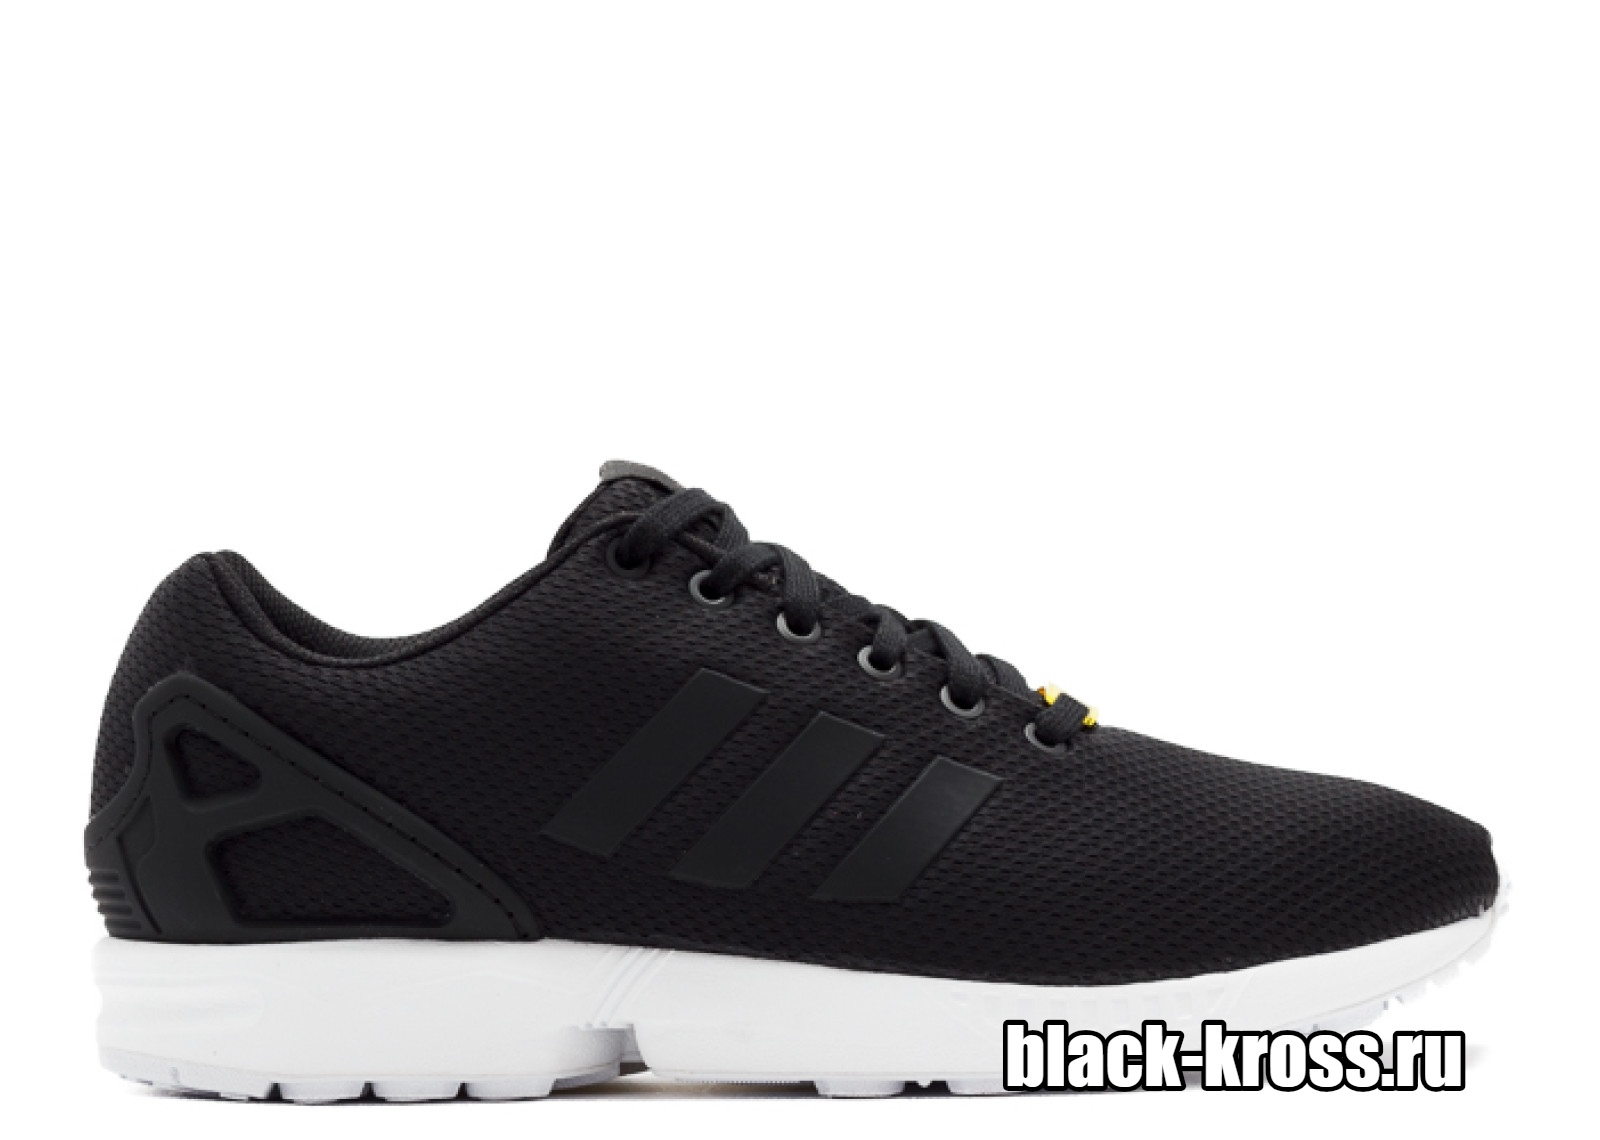 Adidas ZX Flux Black/White (41-45)